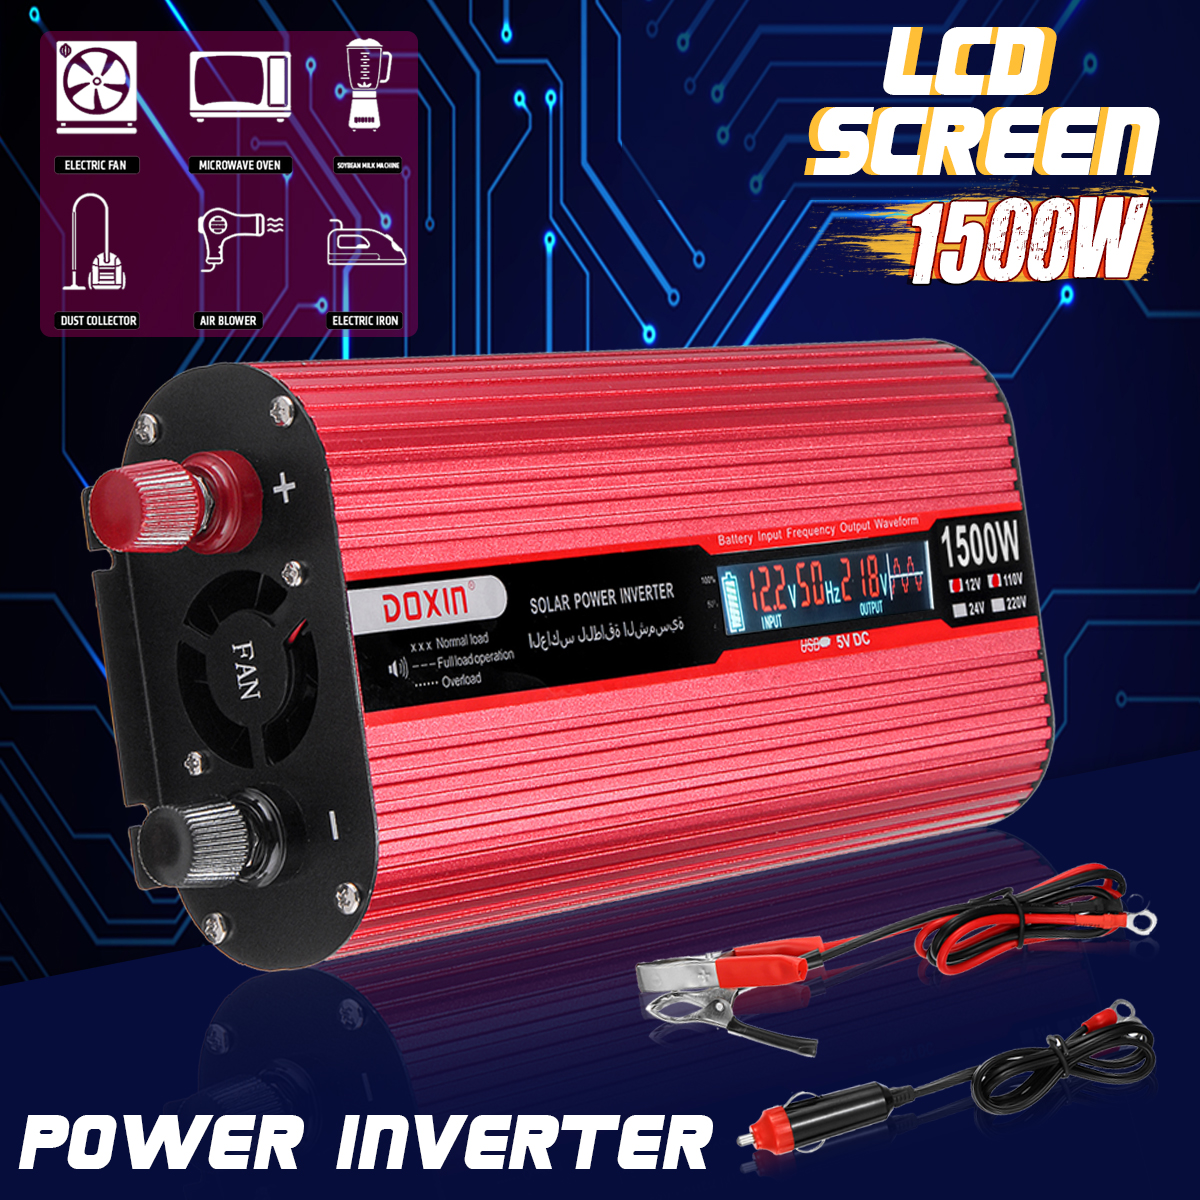 Solar Inverter 12V 220V 1500W P eak Voltage Transformer Converter DC 12V To AC 220V Car Inverter + Car Cigarette Lighter Charger new acehe 1500w car dc 12v to ac 220v overload protection reverse polarity protection power inverter charger converter